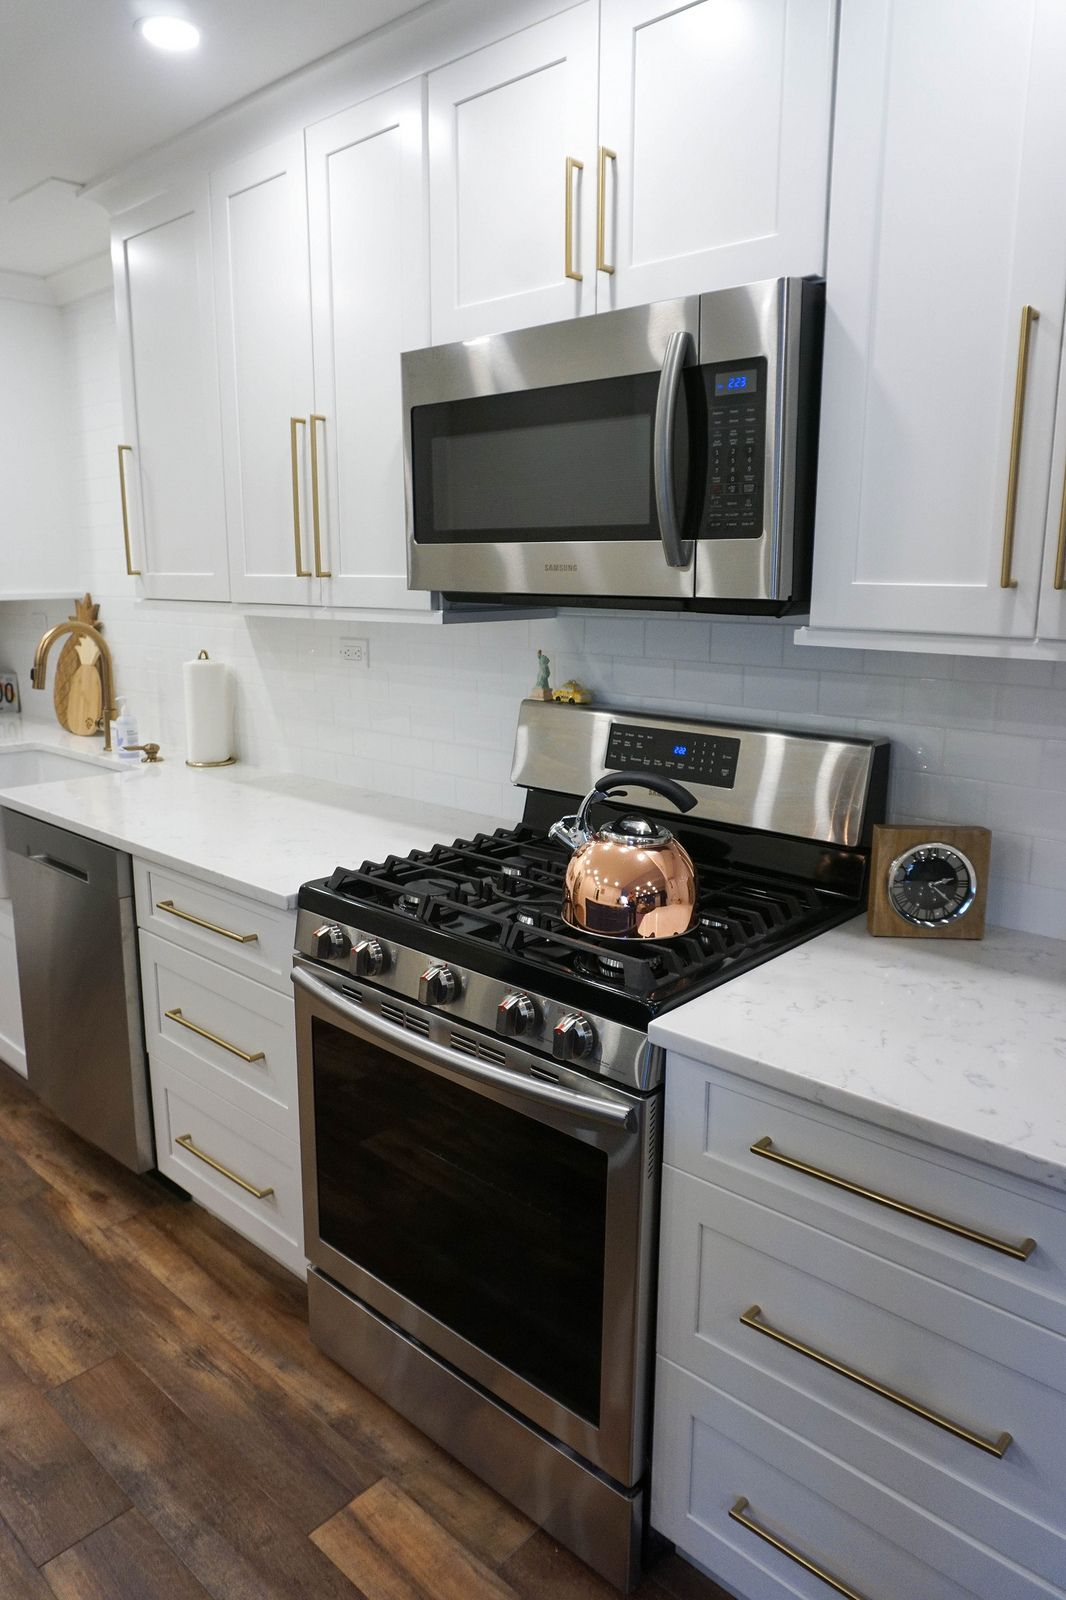 My Entire Apartment Renovation After Photos Living After Midnite Kitchen Remodel Cost Kitchen Cabinets New Kitchen Cabinets